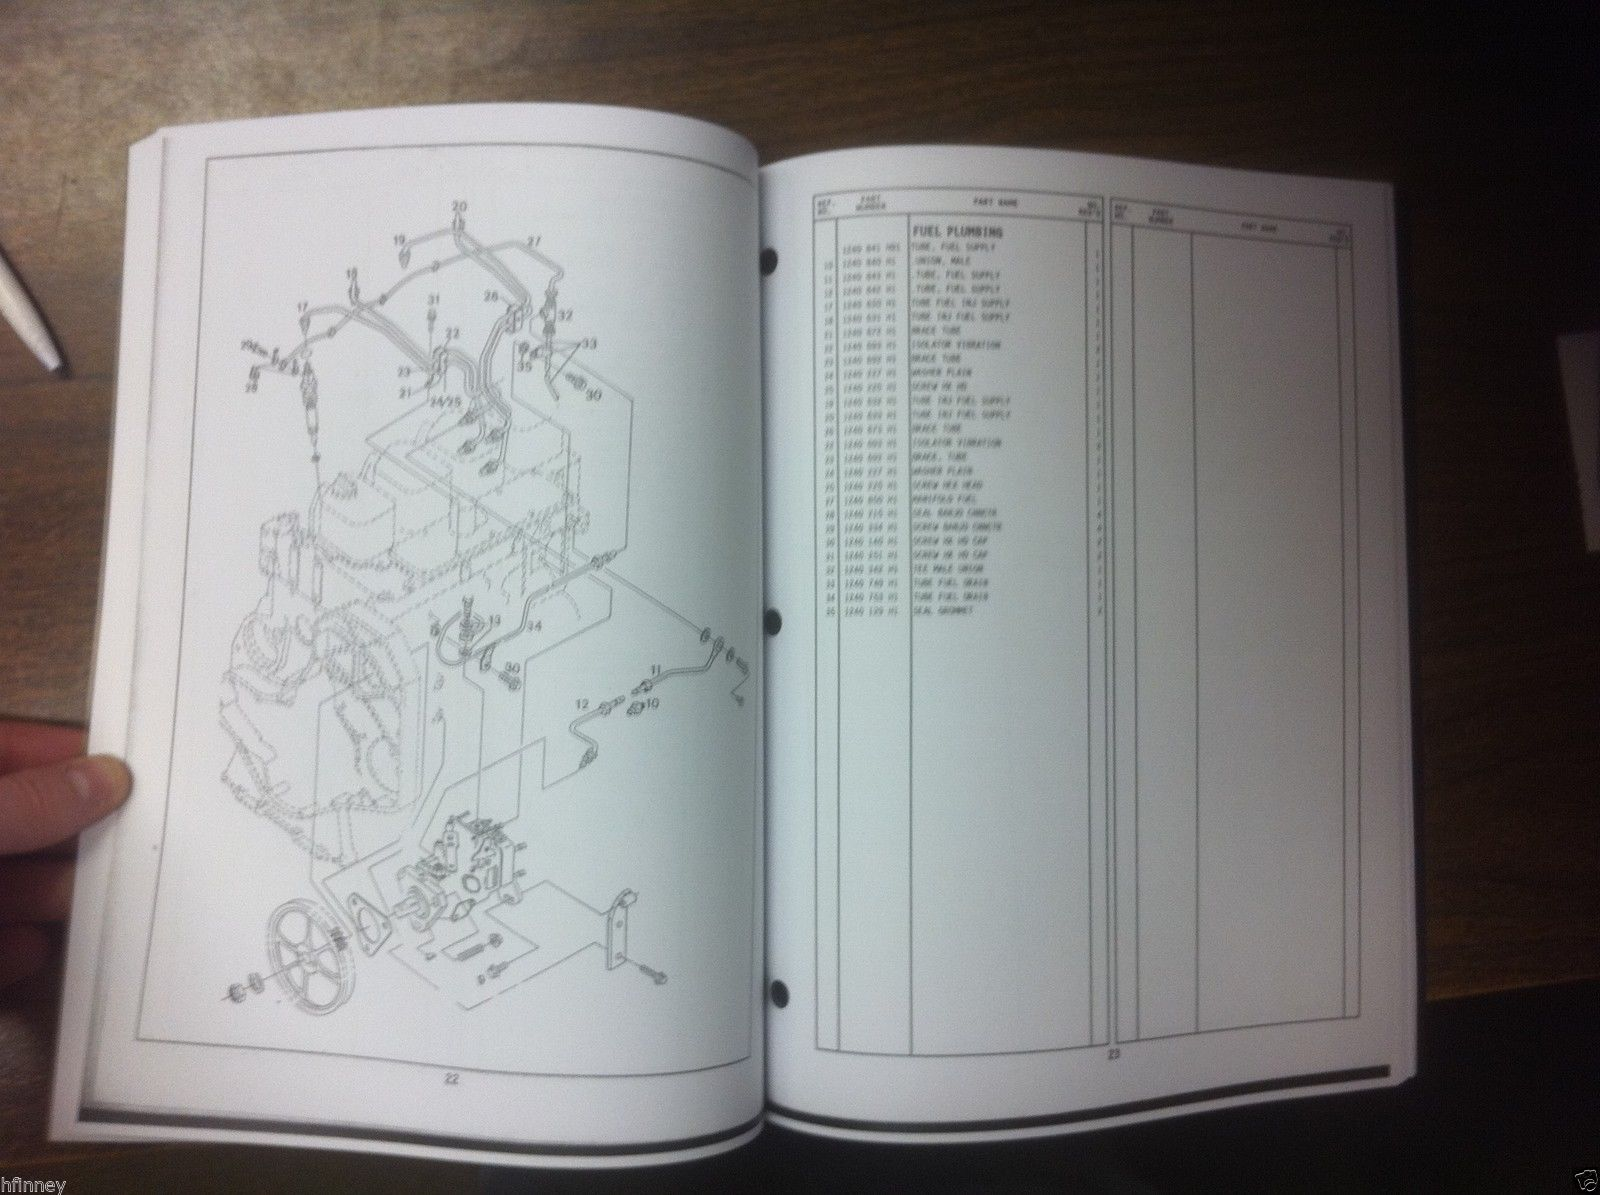 international harvester ih dresser 125g d240t td8g engine parts manual  book new